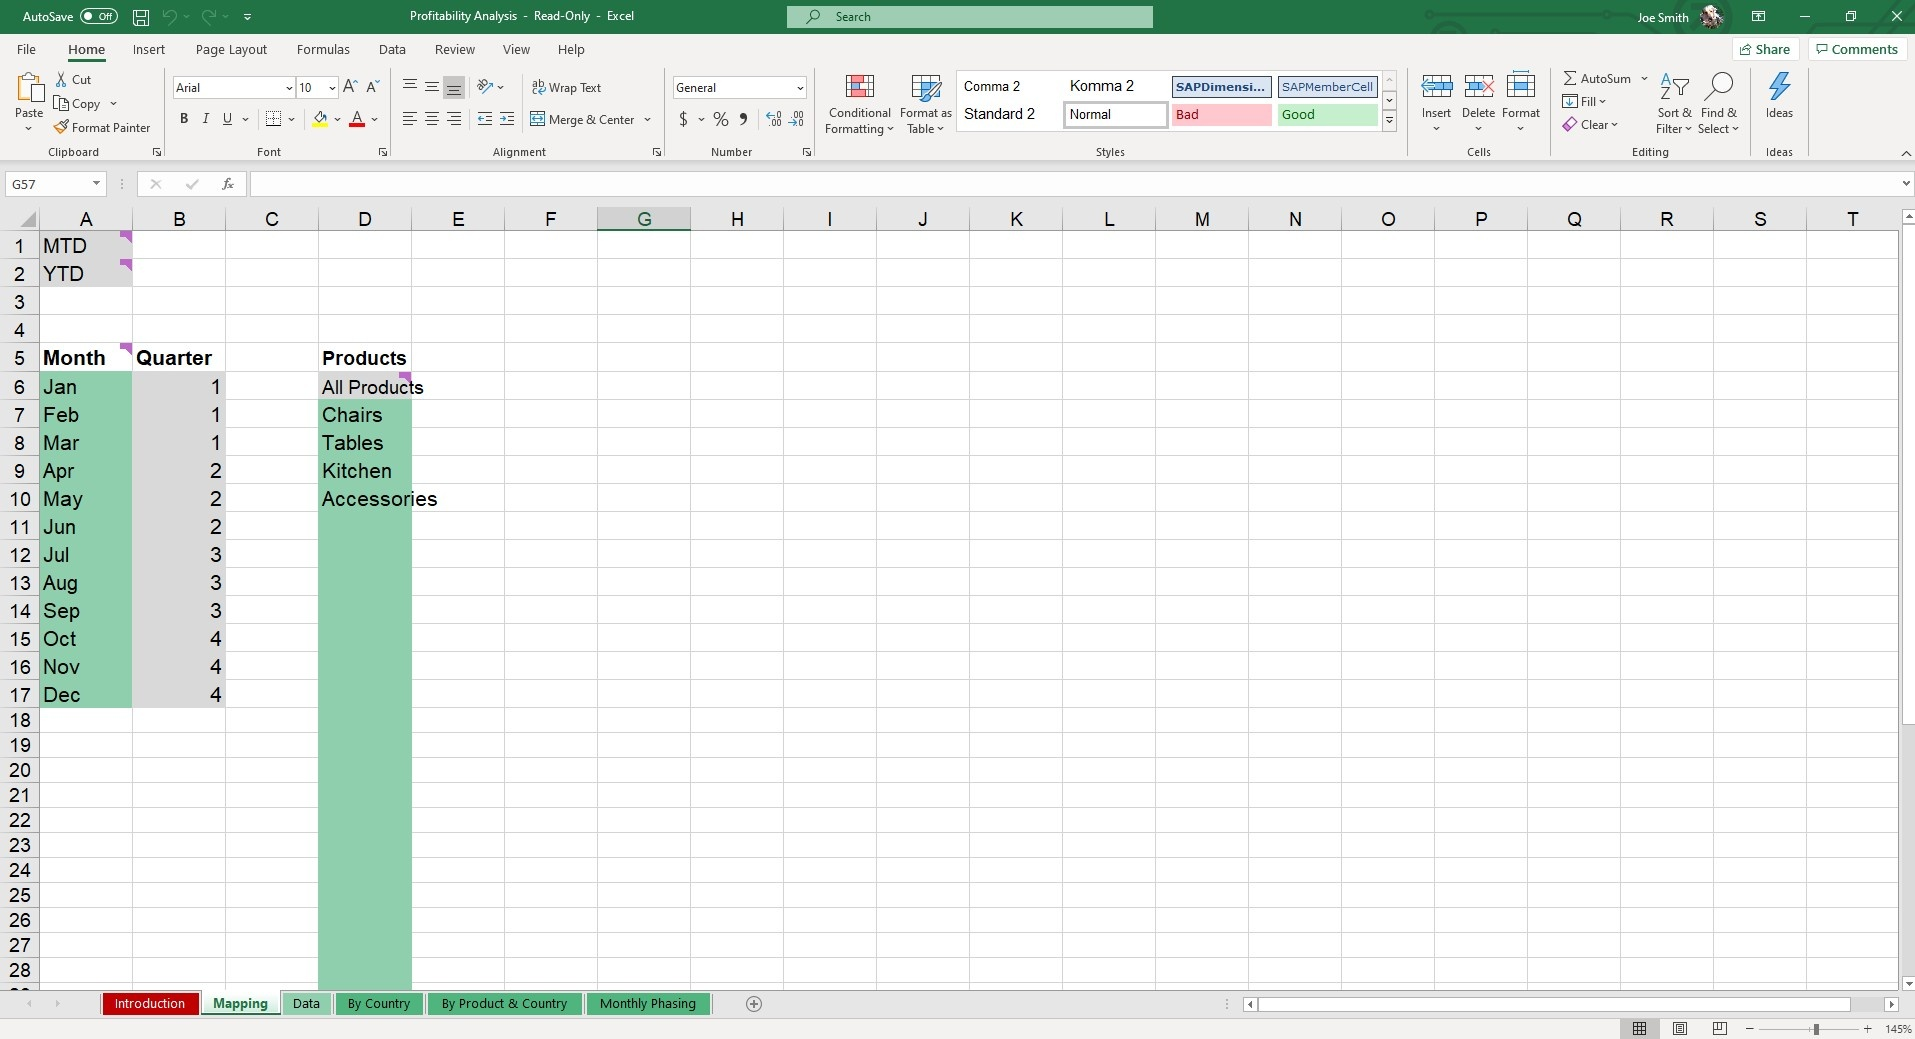 Upload your products and the month and quarter you'd like to map for in our Profitability Analysis Excel Template.